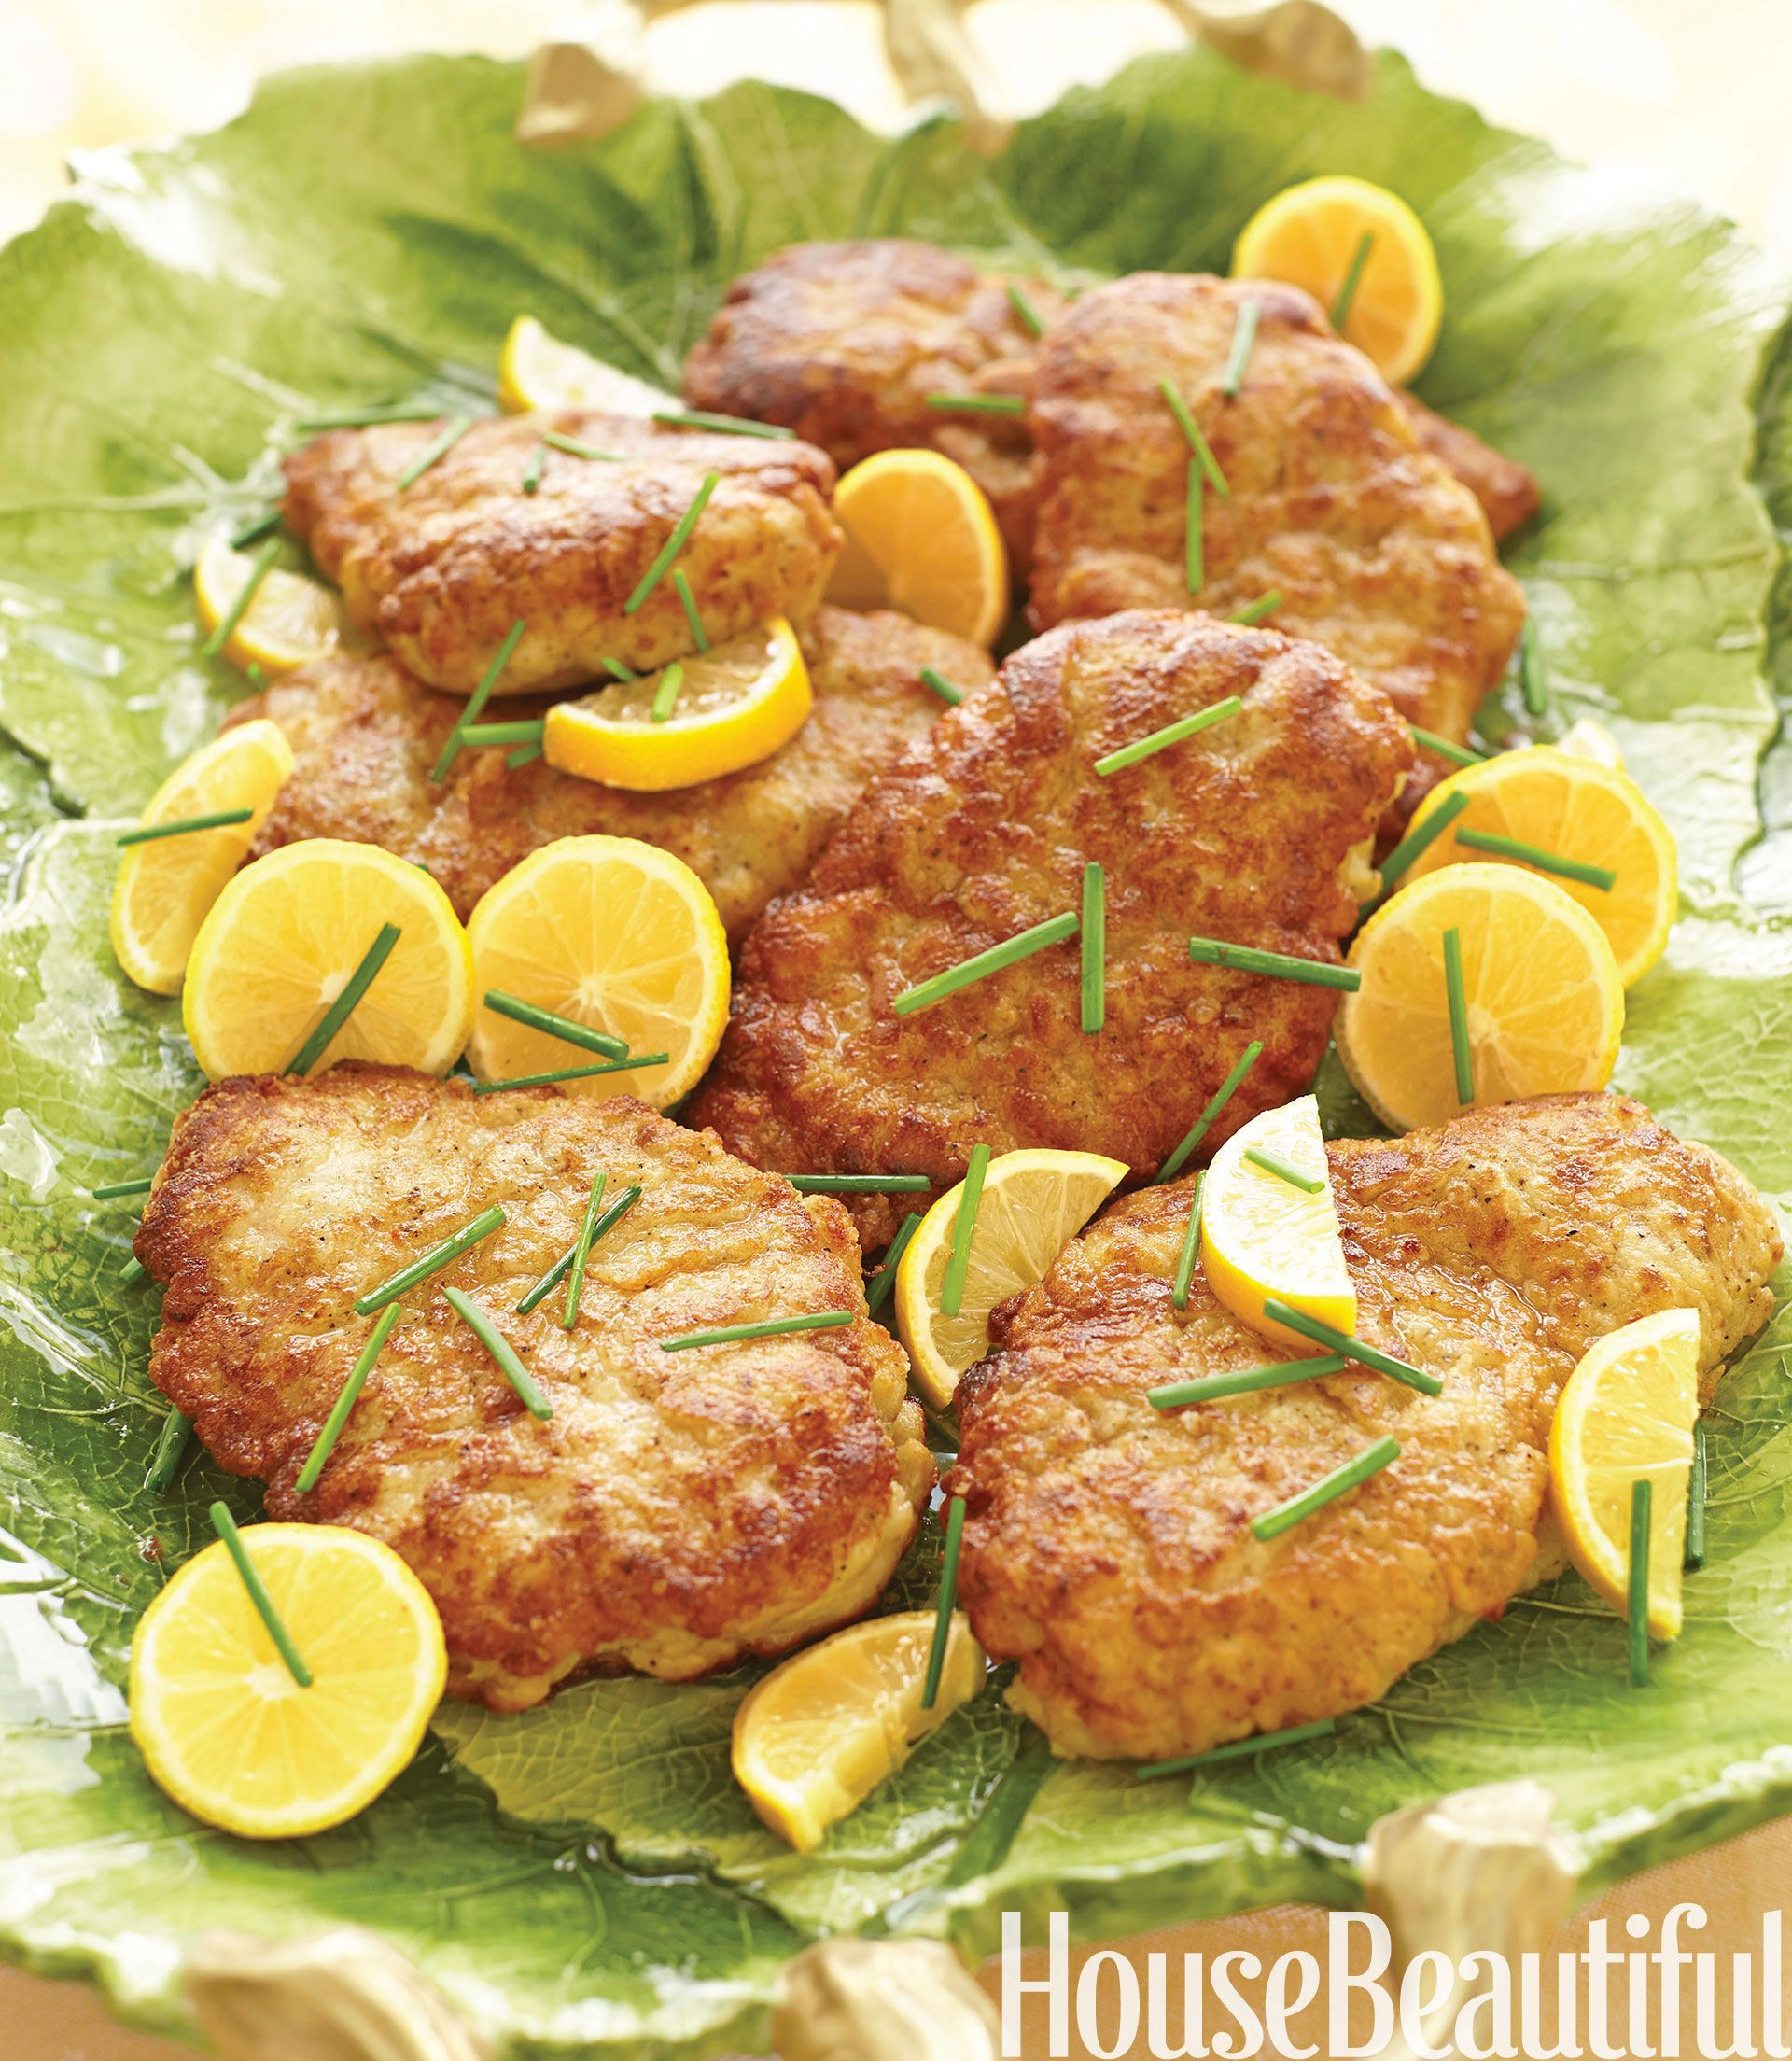 Parmesan-Crusted Chicken with Lemon Butter from Alex Hitz